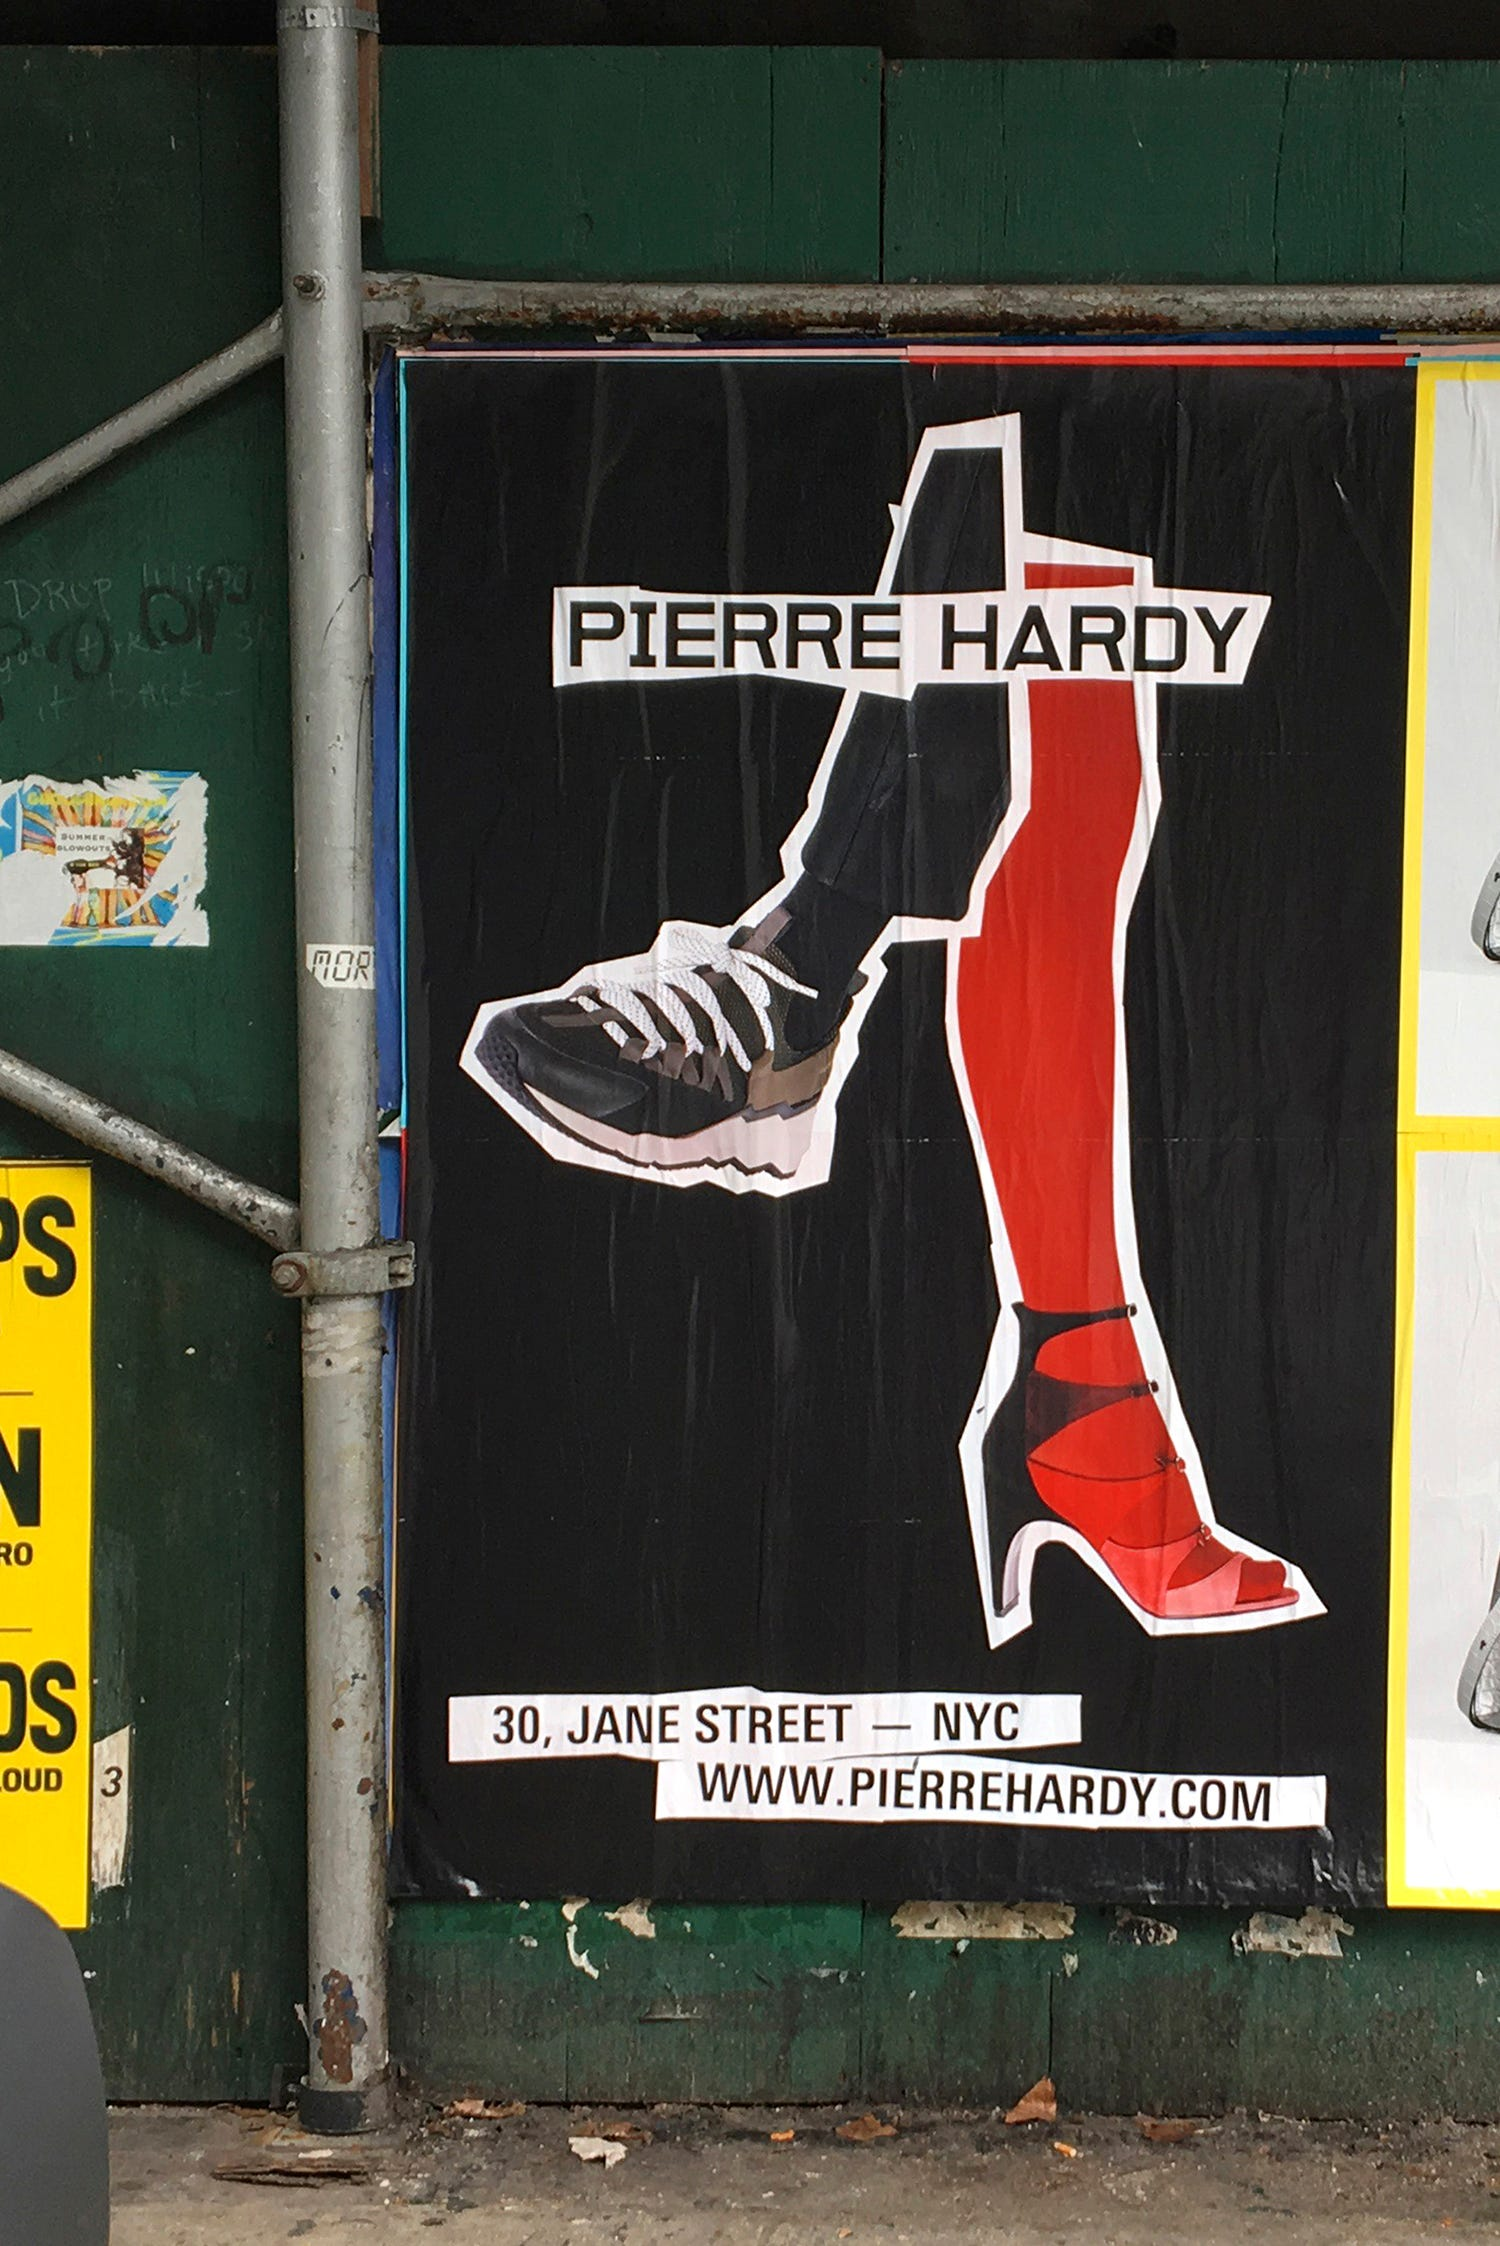 PIERRE HARDY STREET CAMPAIGN — NYC